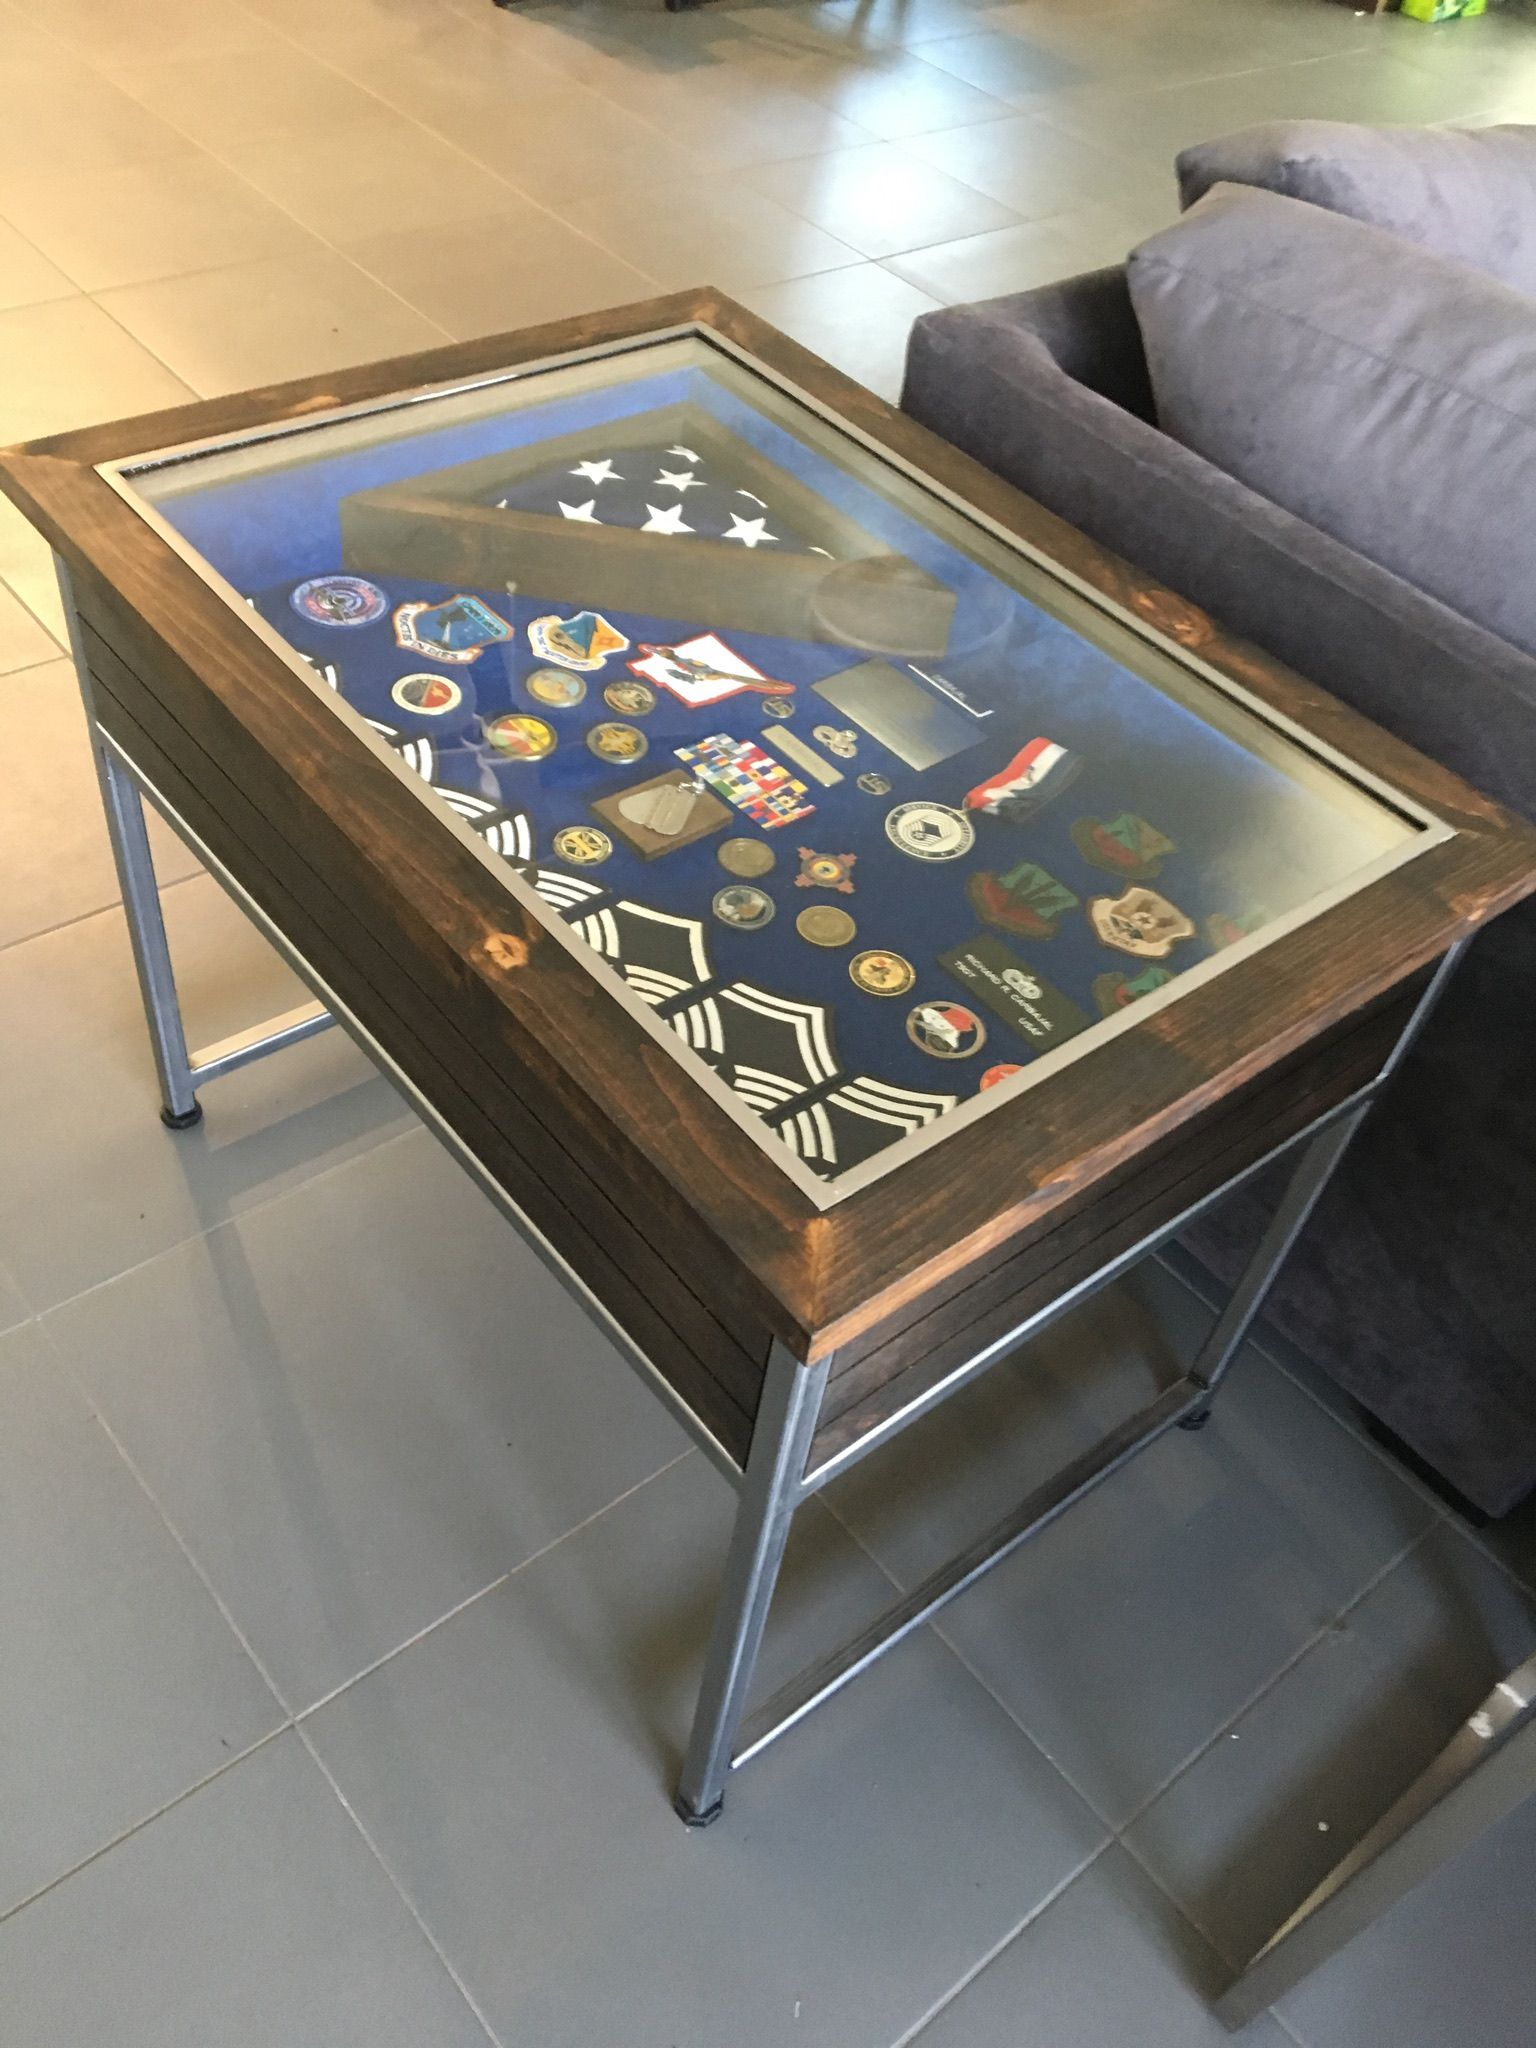 Window Coffee Table Military Gift Military Retirement Military Shadow Box Shadow Box Military Shadow Box Shadow Box Coffee Table Display Coffee Table